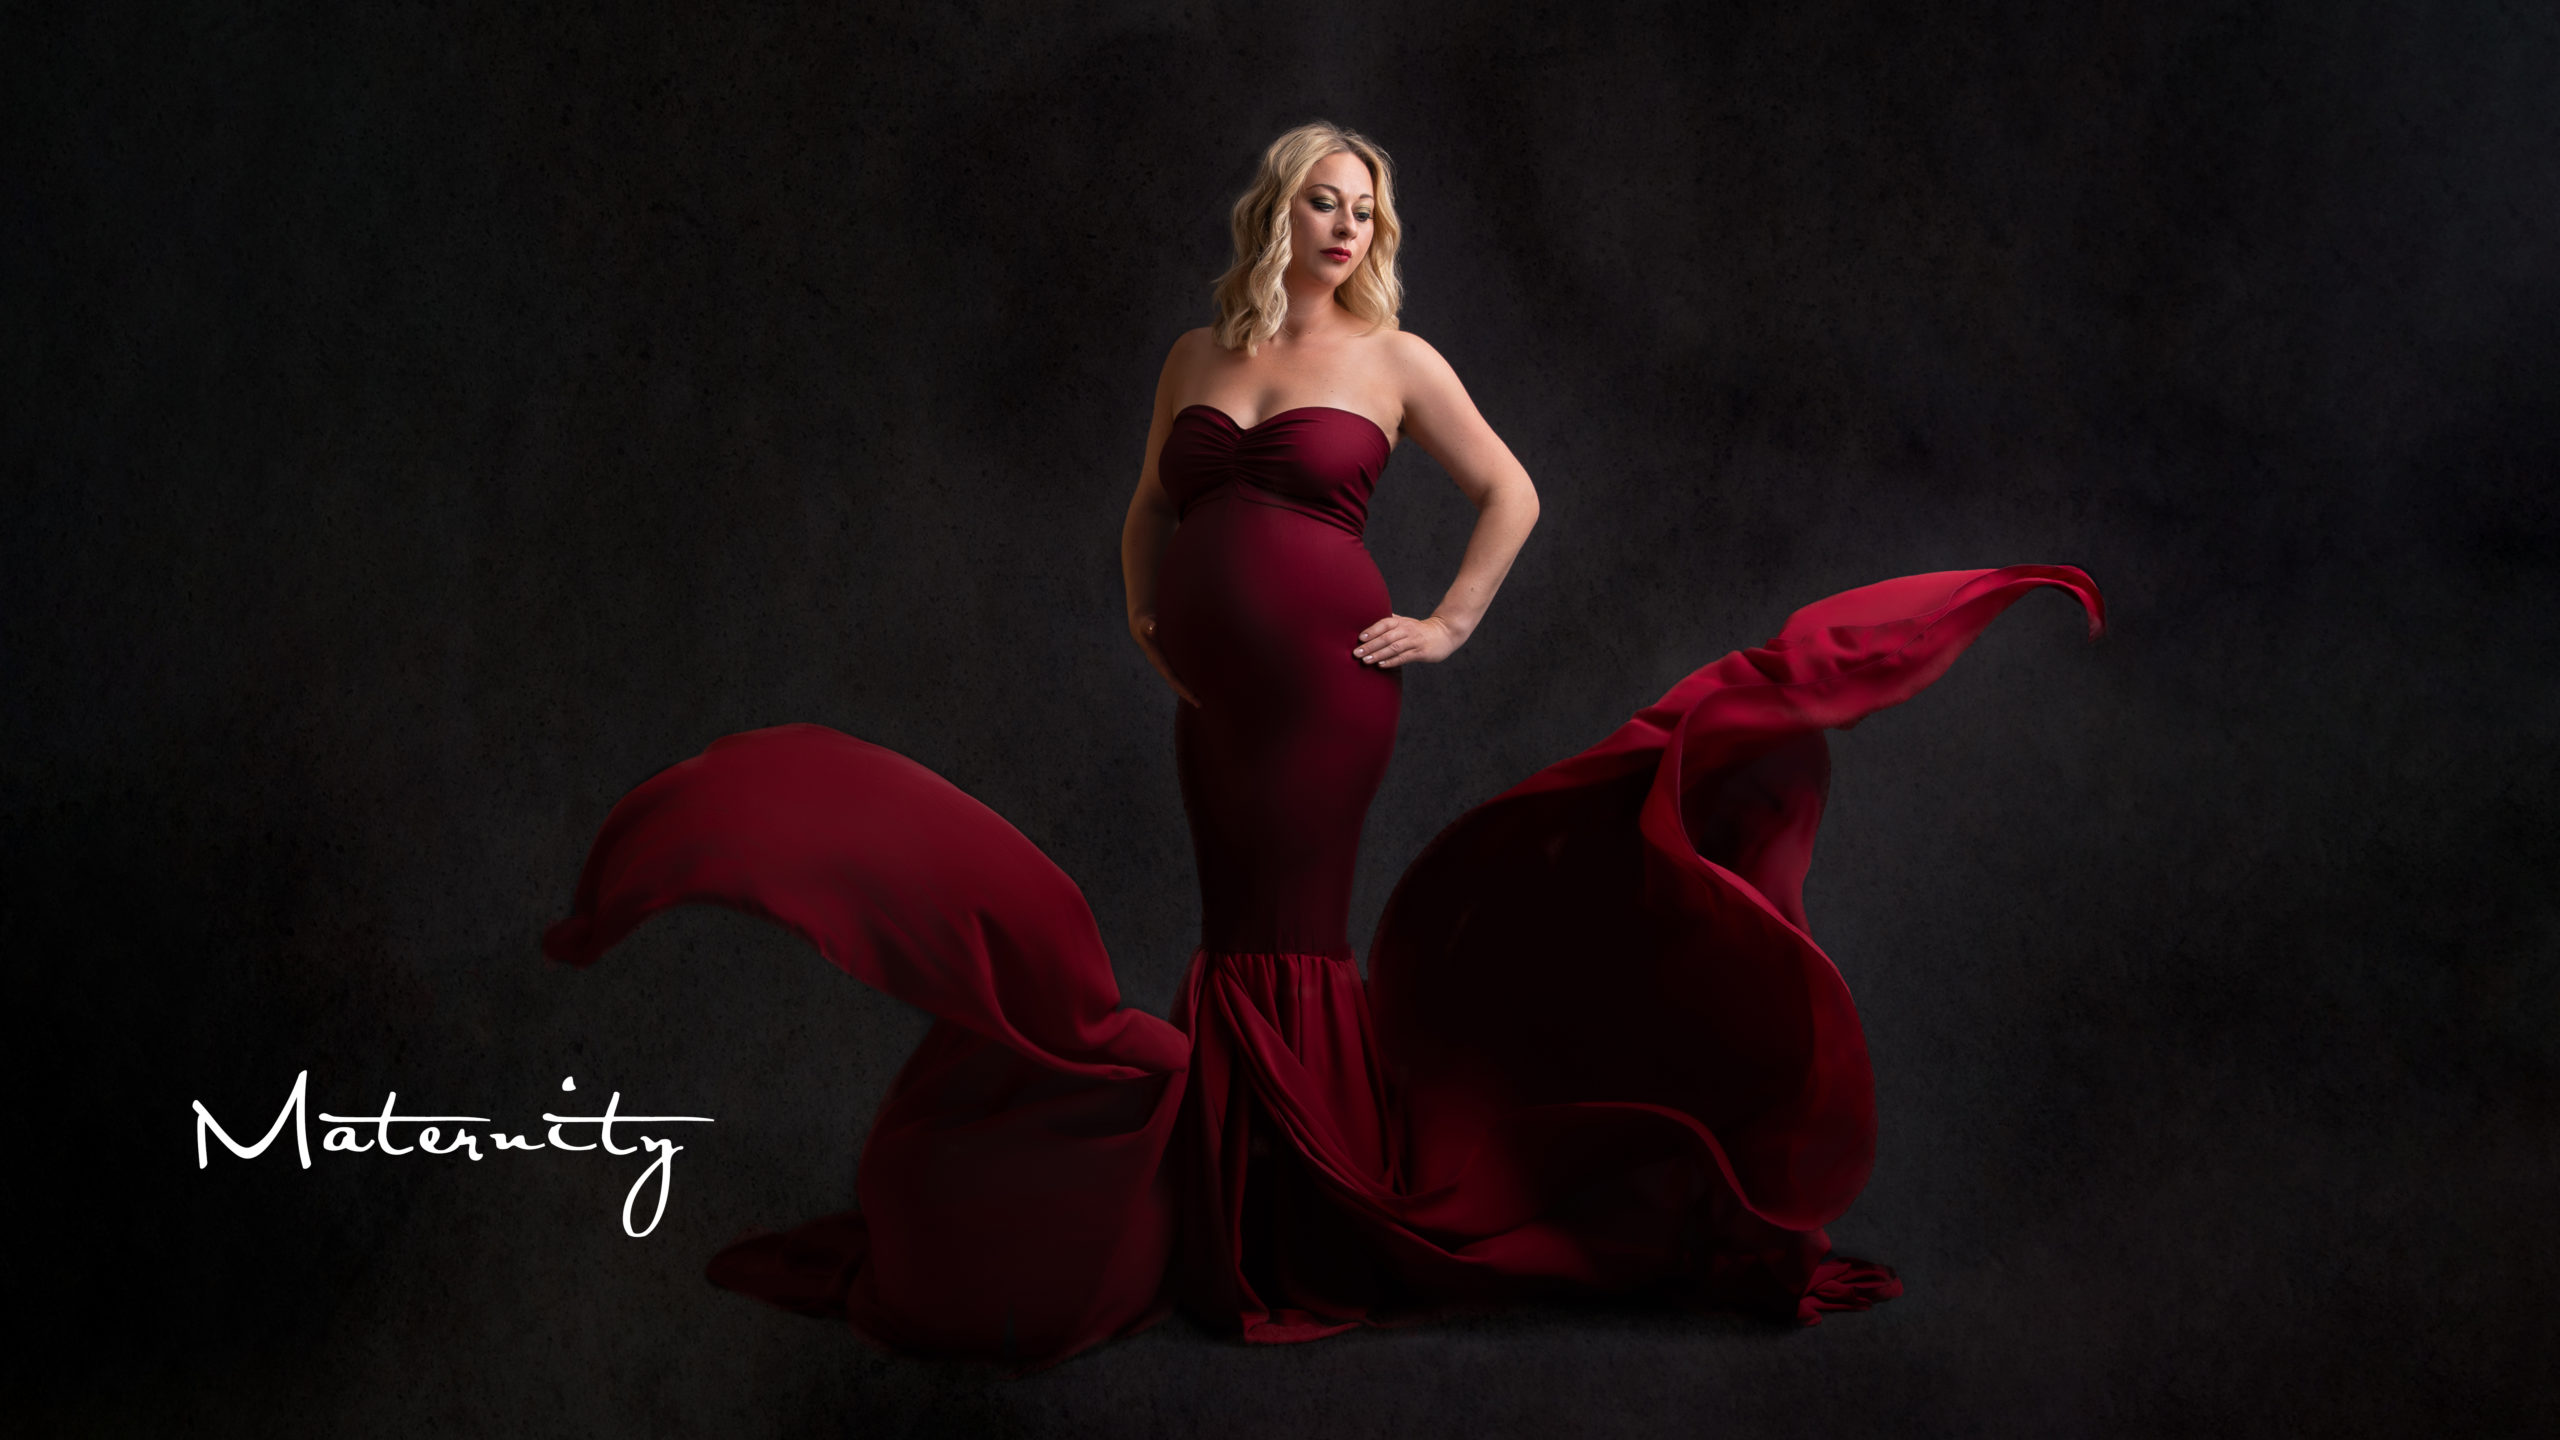 maternity portrait photography in newcastle and Durham